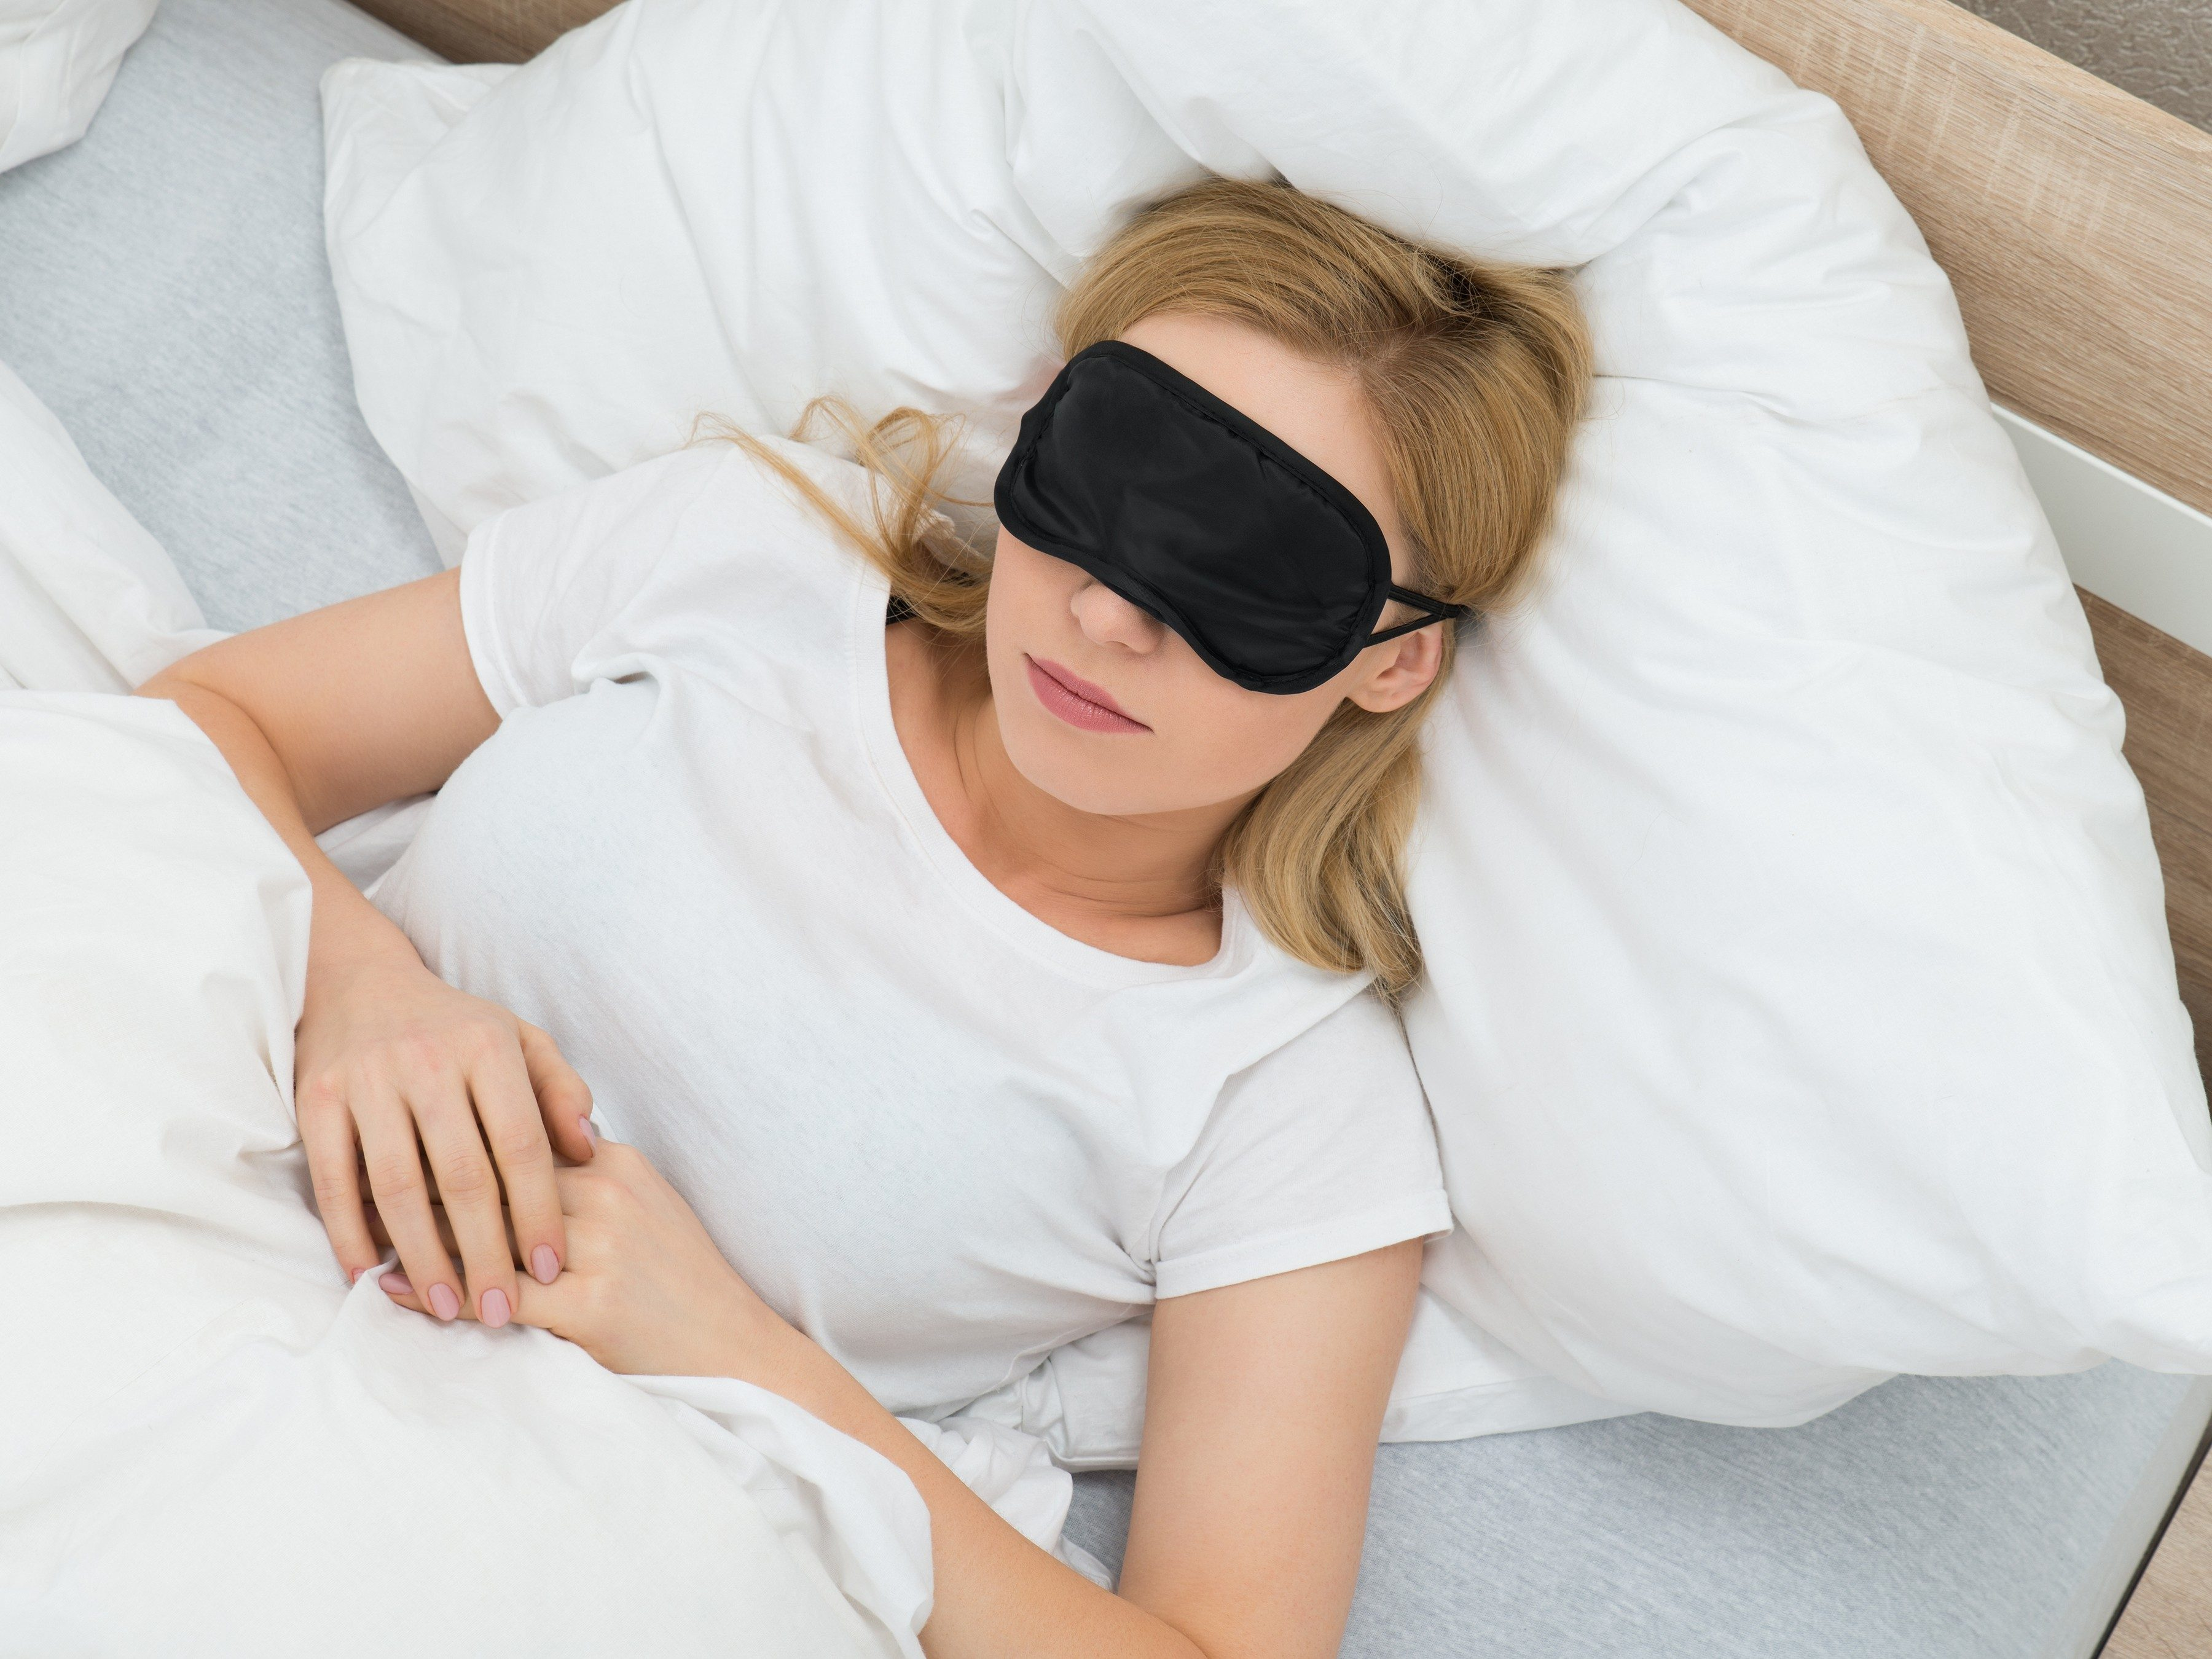 4. Get a better sleep by preparing your bedroom